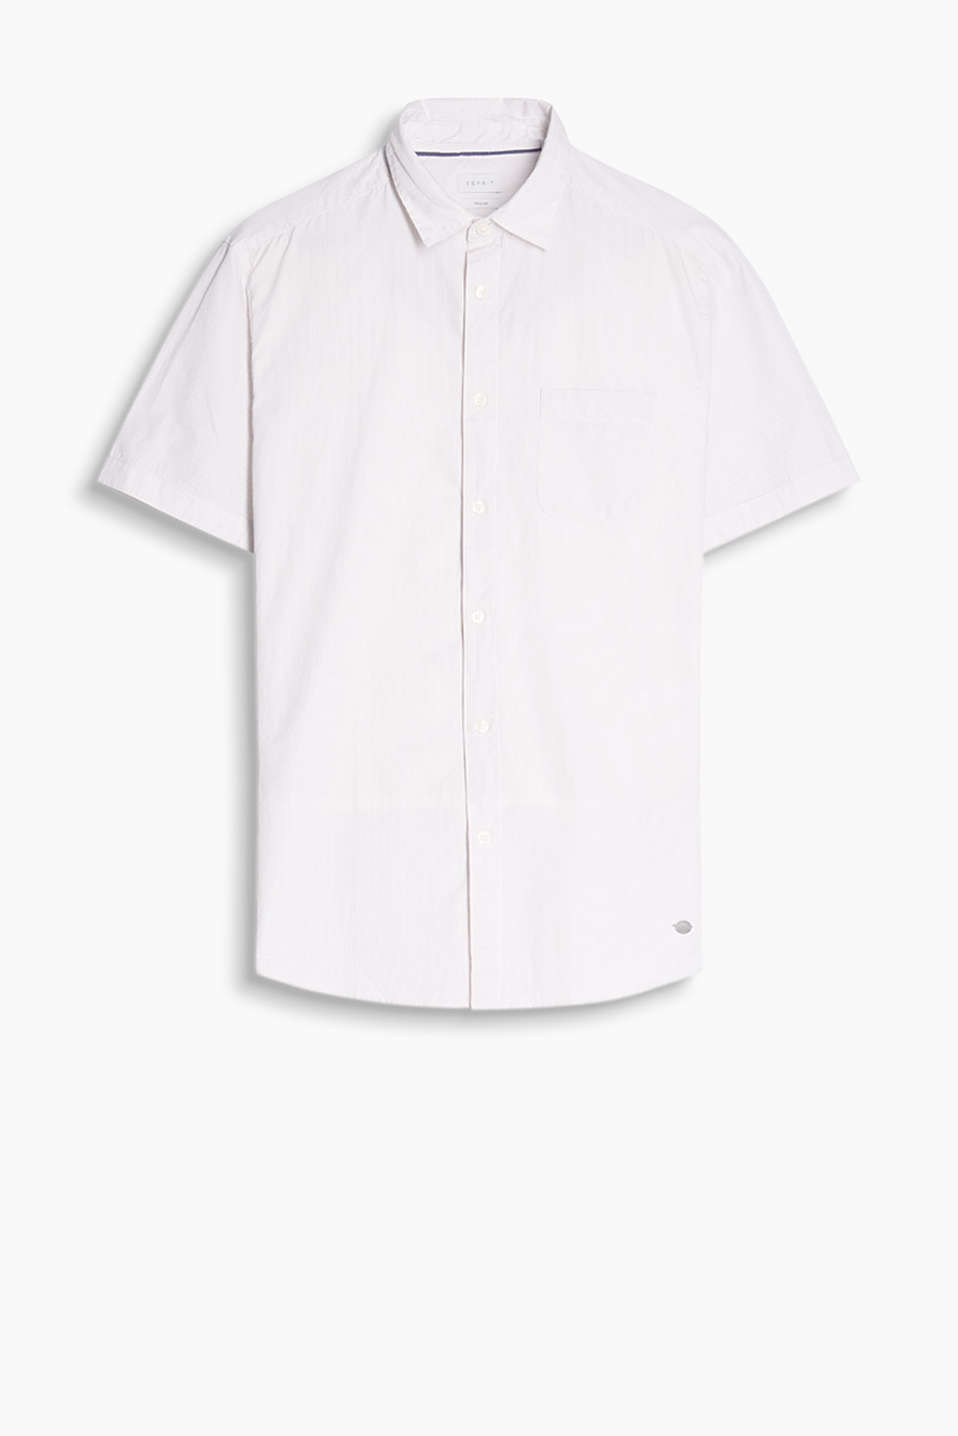 Short-sleeve shirt with fine interwoven stripes or a distinctive glencheck pattern, 100% cotton